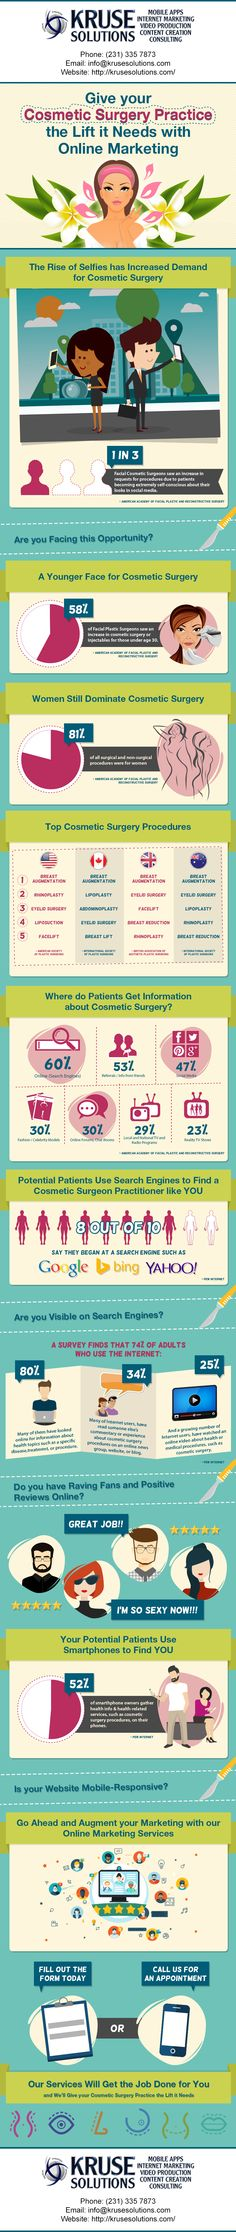 Kruse Solutions, LLC Marketing for Cosmetic Surgeons Infographic